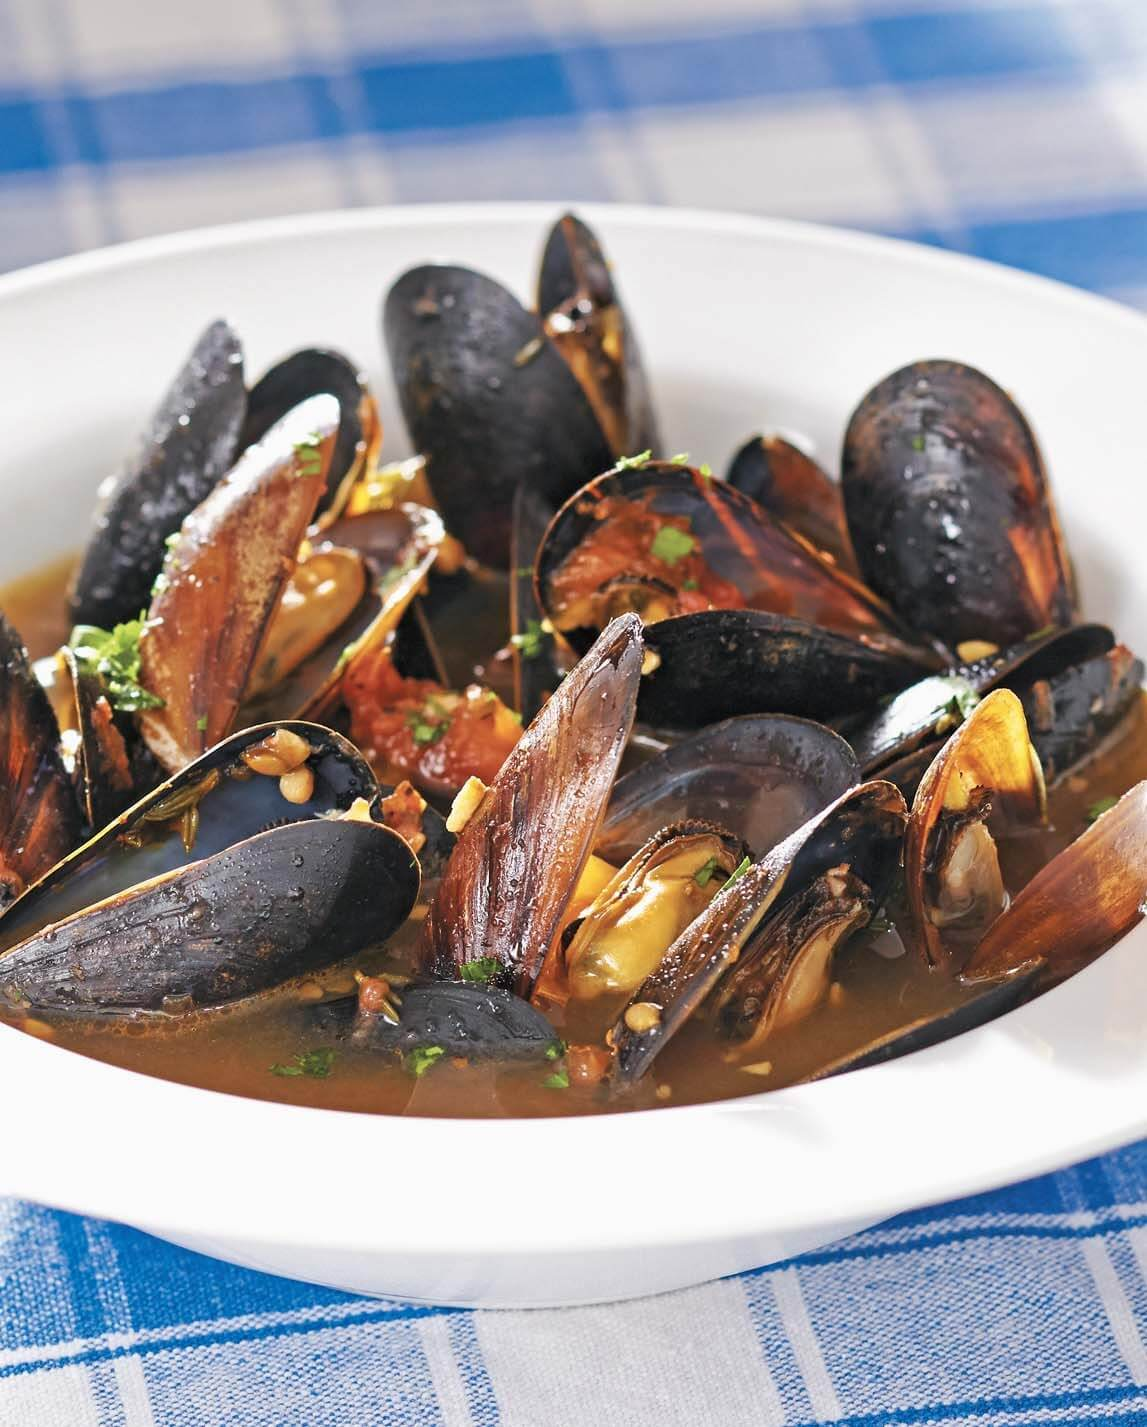 Mussels in Tomato–Saffron Broth/Moules Provencales